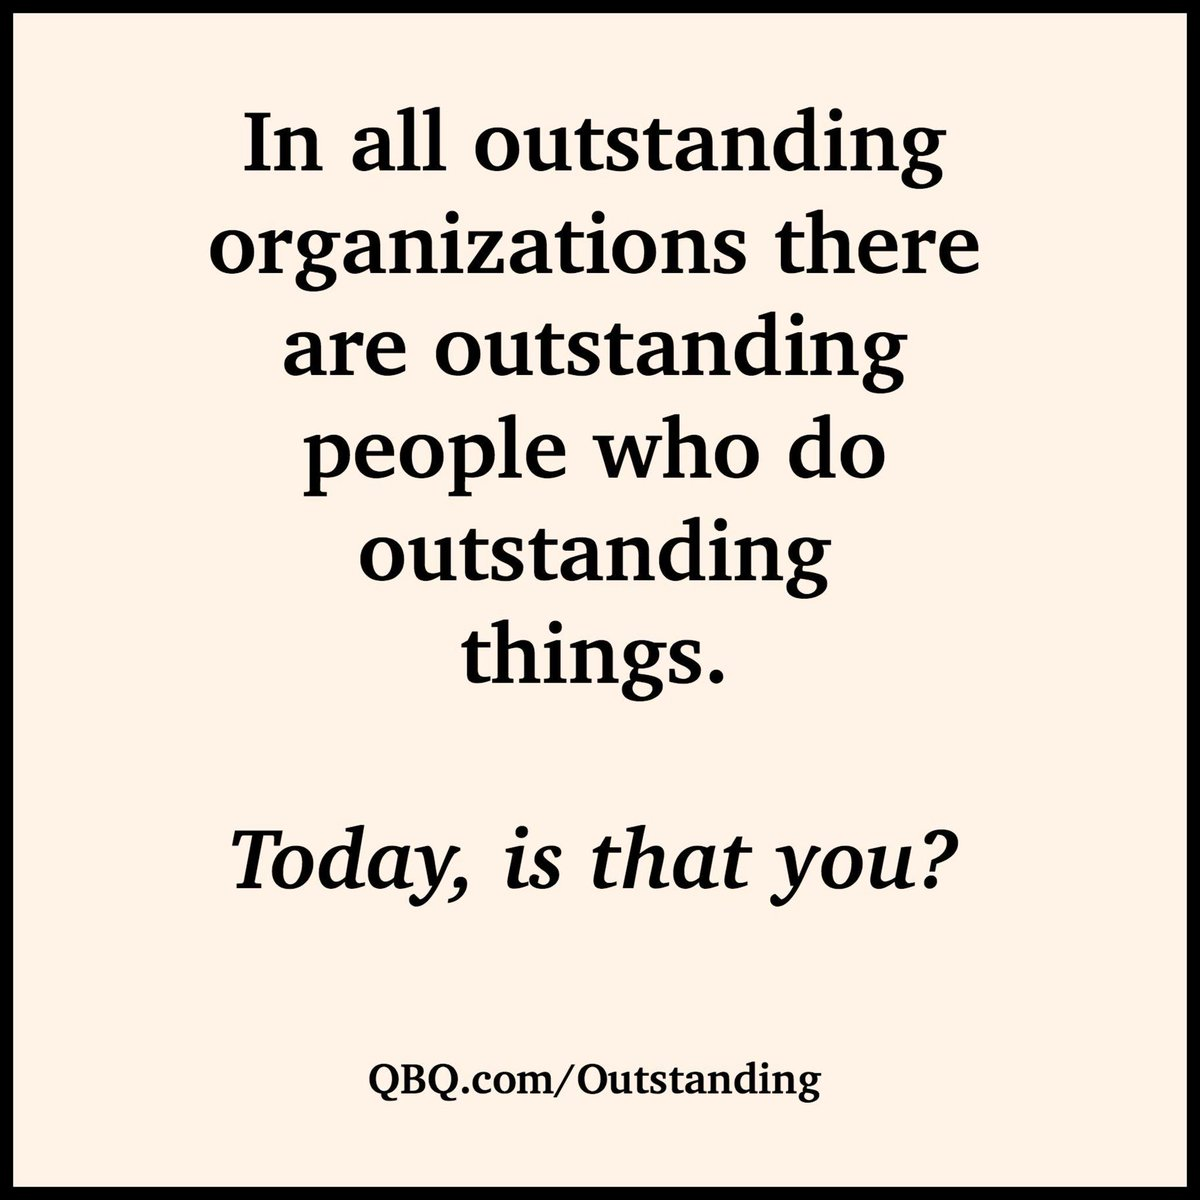 We can be mediocre, good, great - or OUTSTANDING! And being outstanding is a choice! http://t.co/pnd5BM95tZ